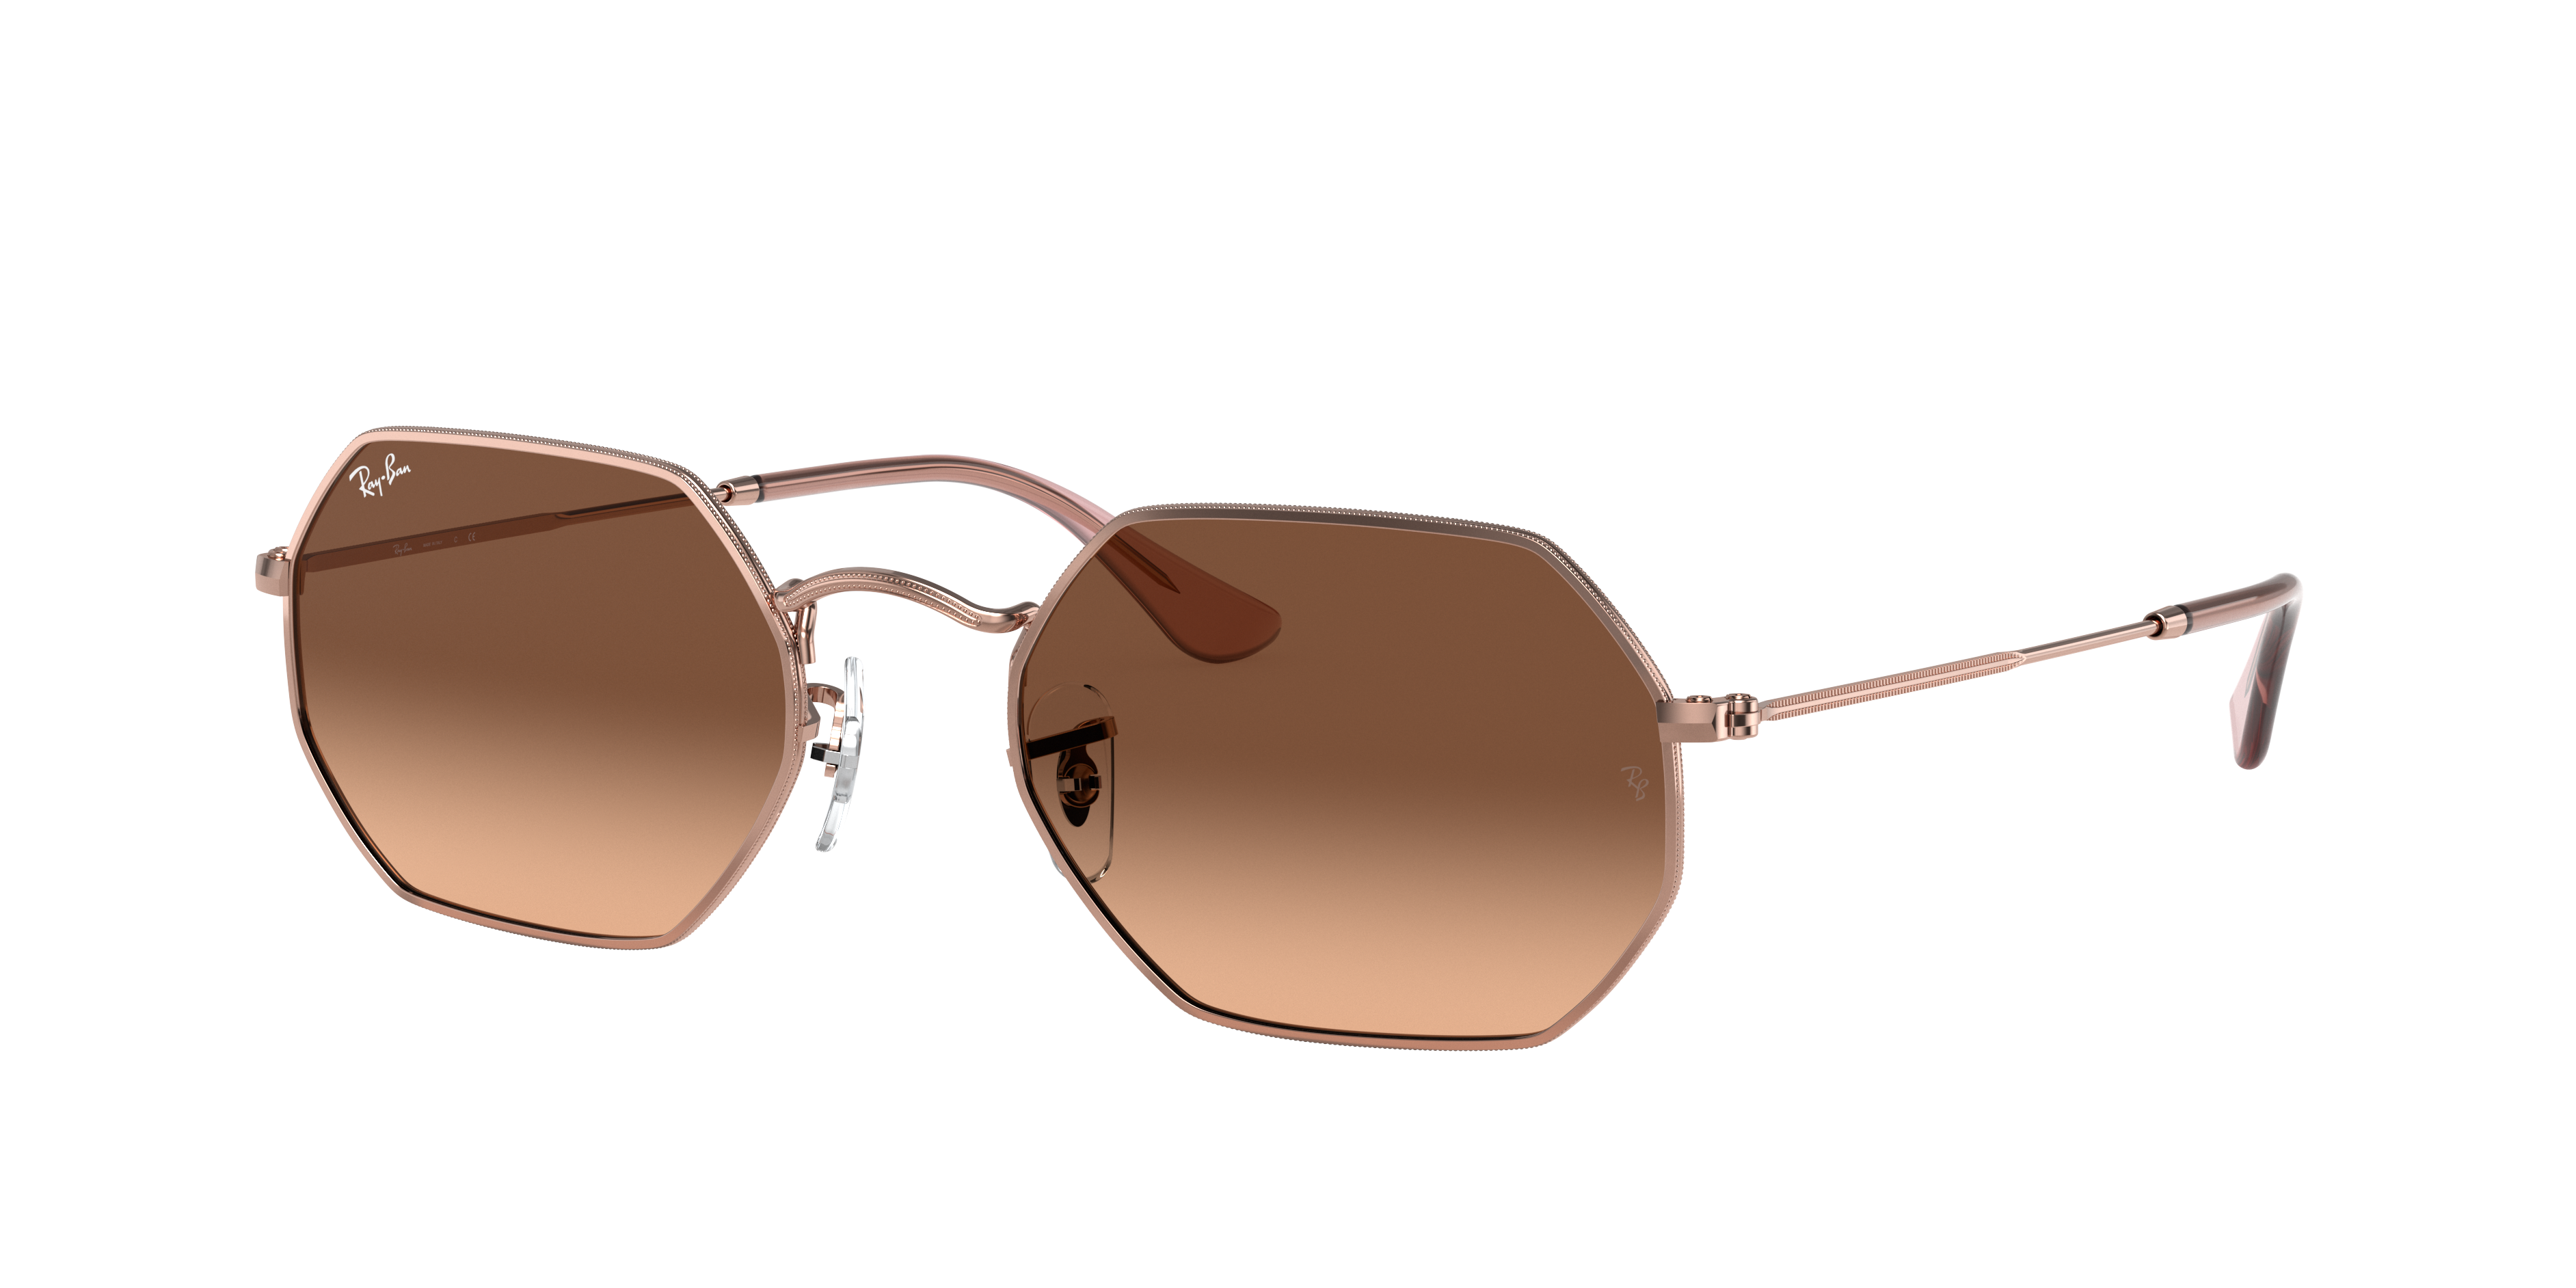 Ray-Ban Octagonal Classic Bronze-Copper, Brown Lenses - RB3556N